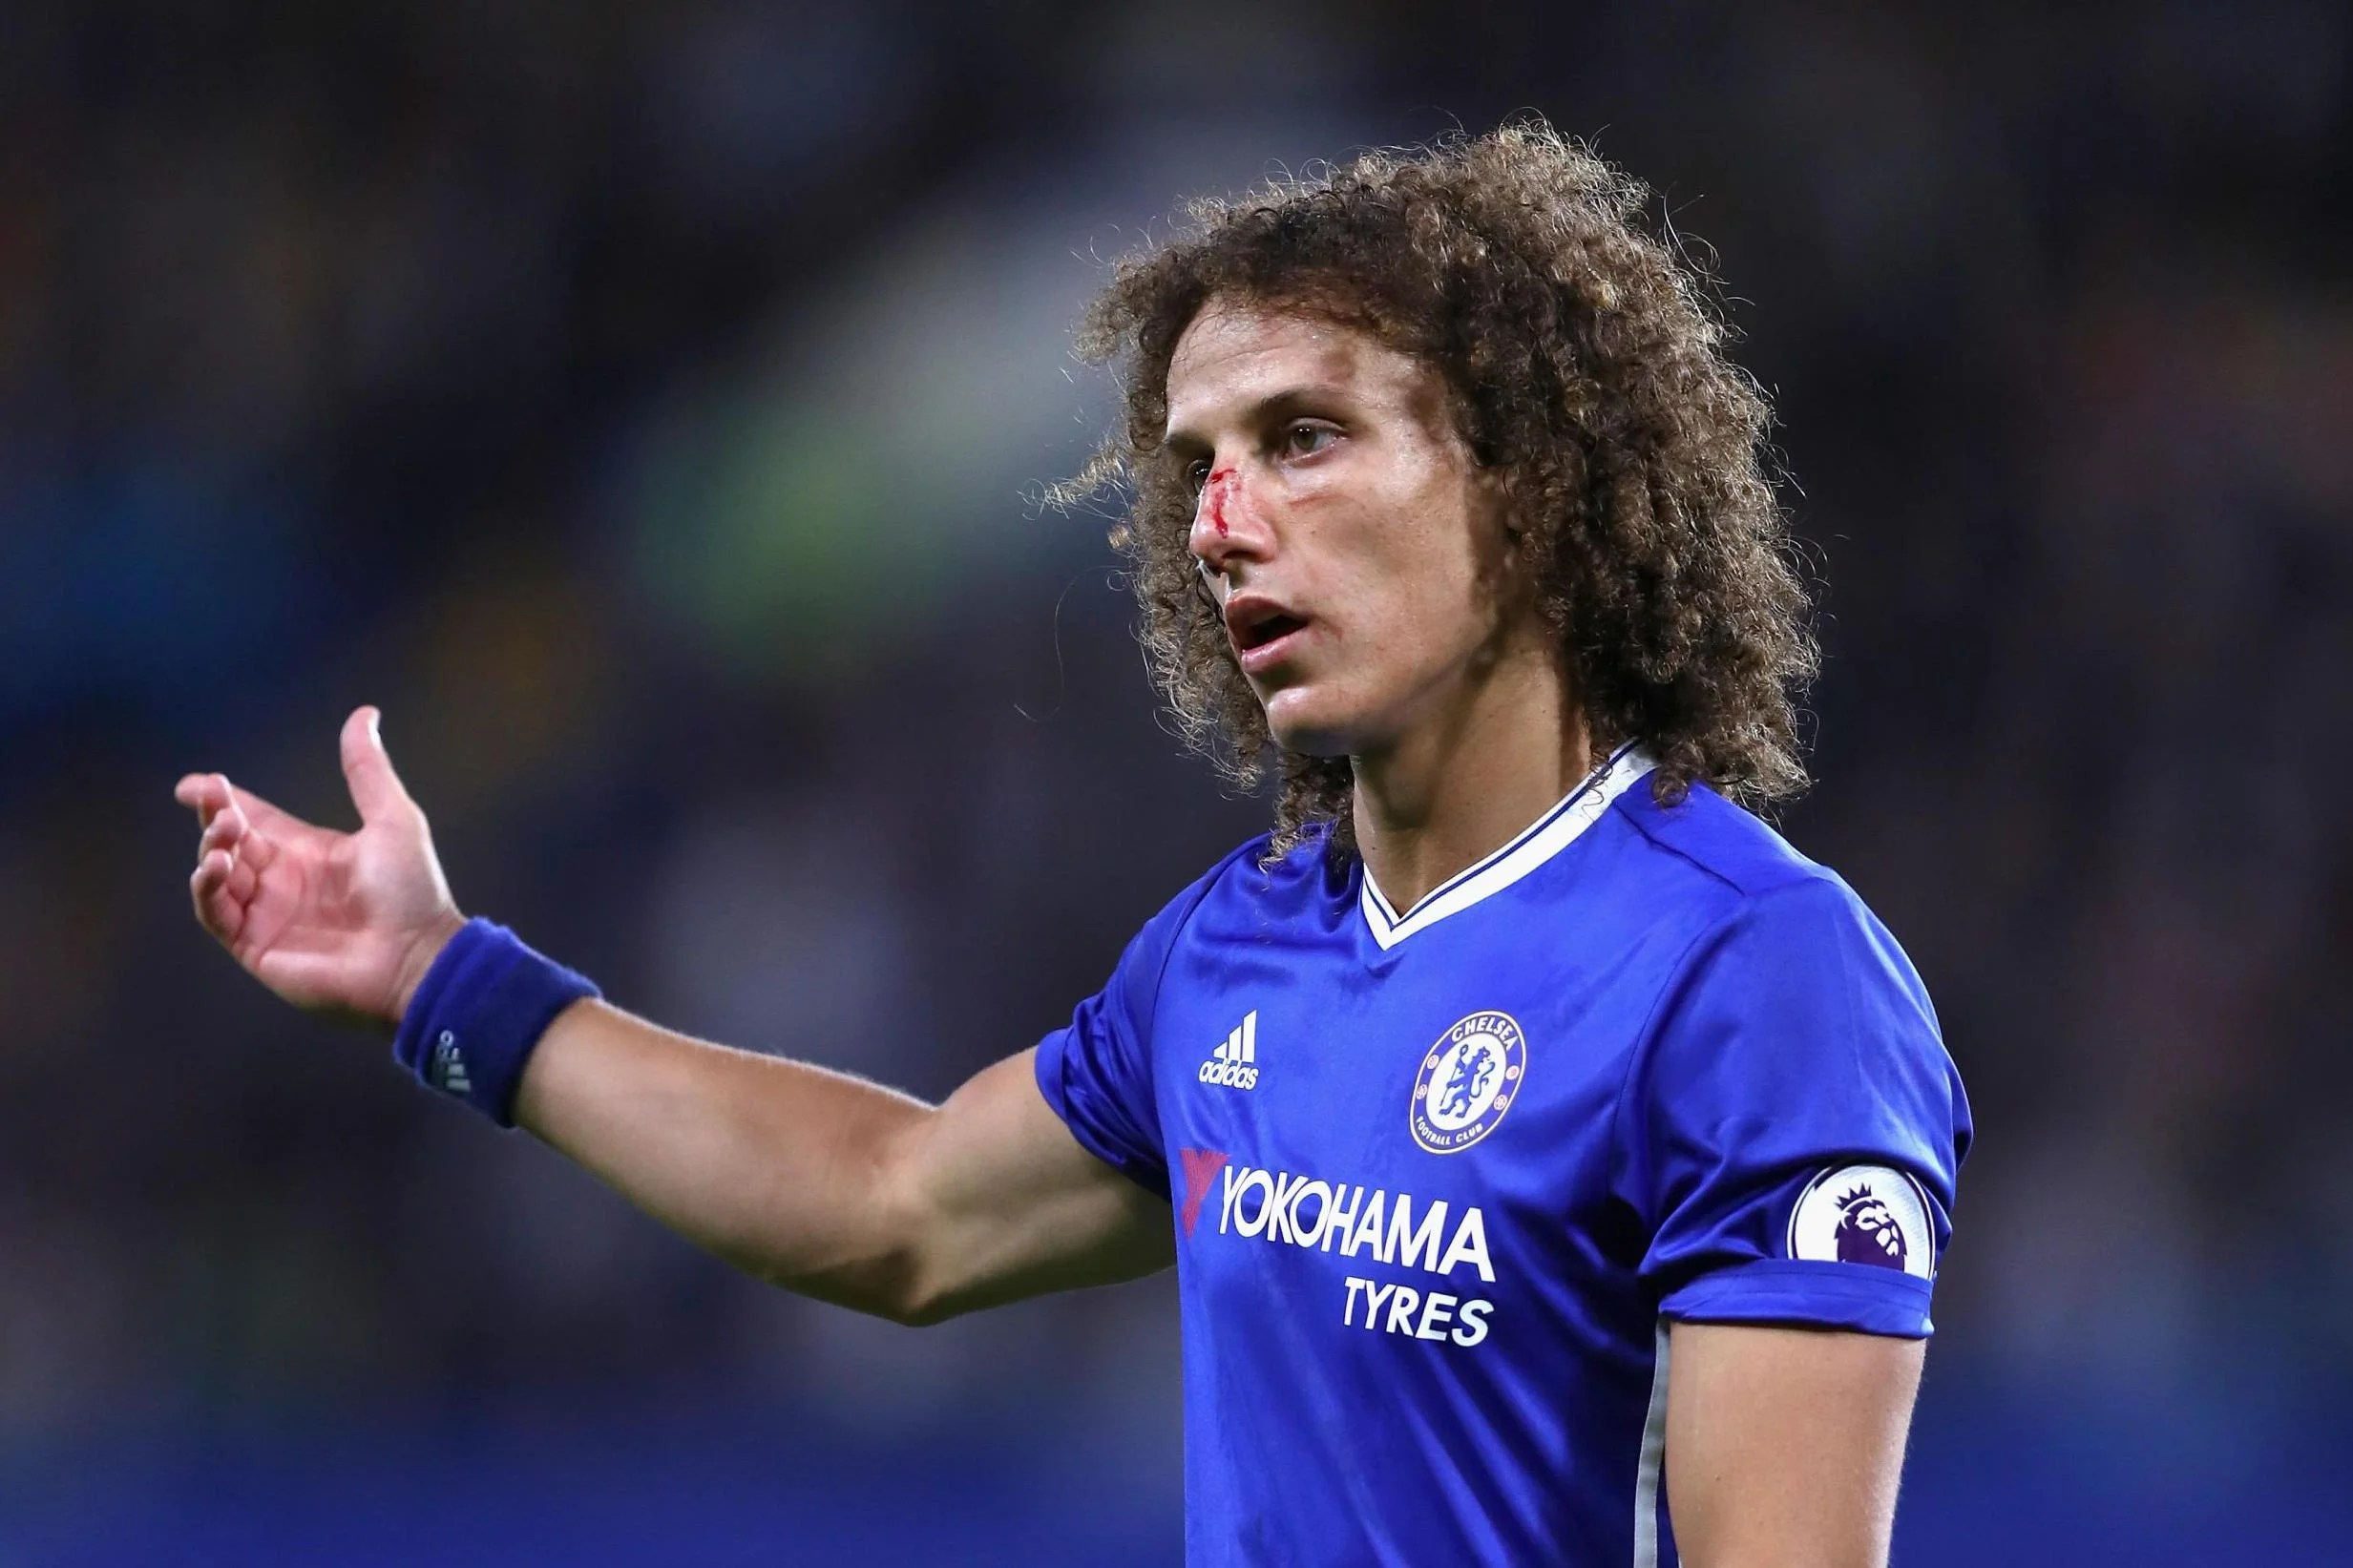 Leicester Vs Chelsea Antonio Contes Side Need David Luiz